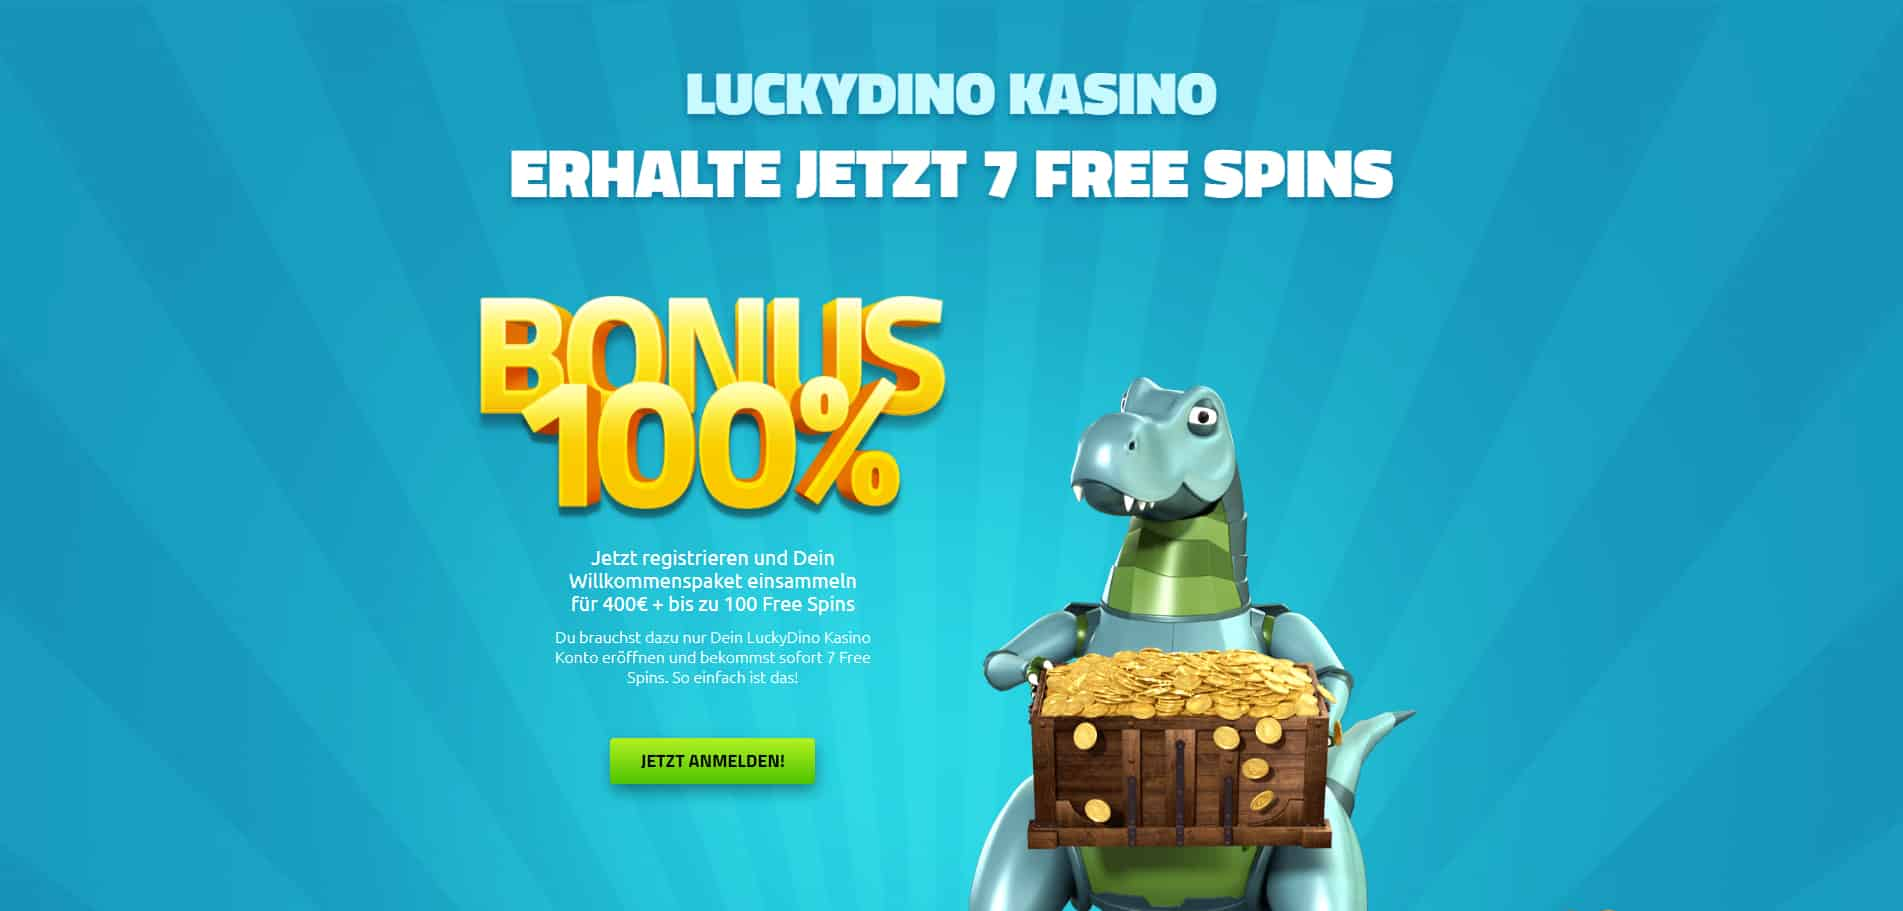 LuckyDino Casino Content Images - Germany CasinoTop